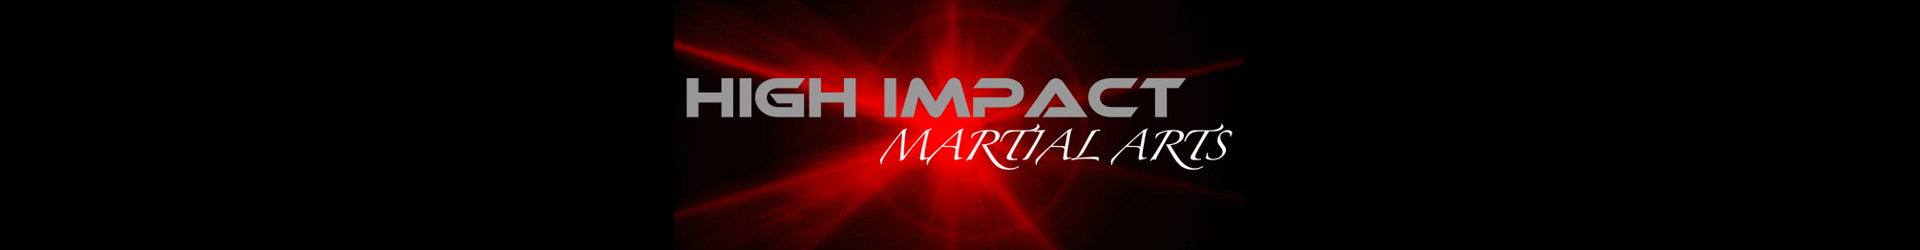 High Impact Martial Arts in West New York, NJ